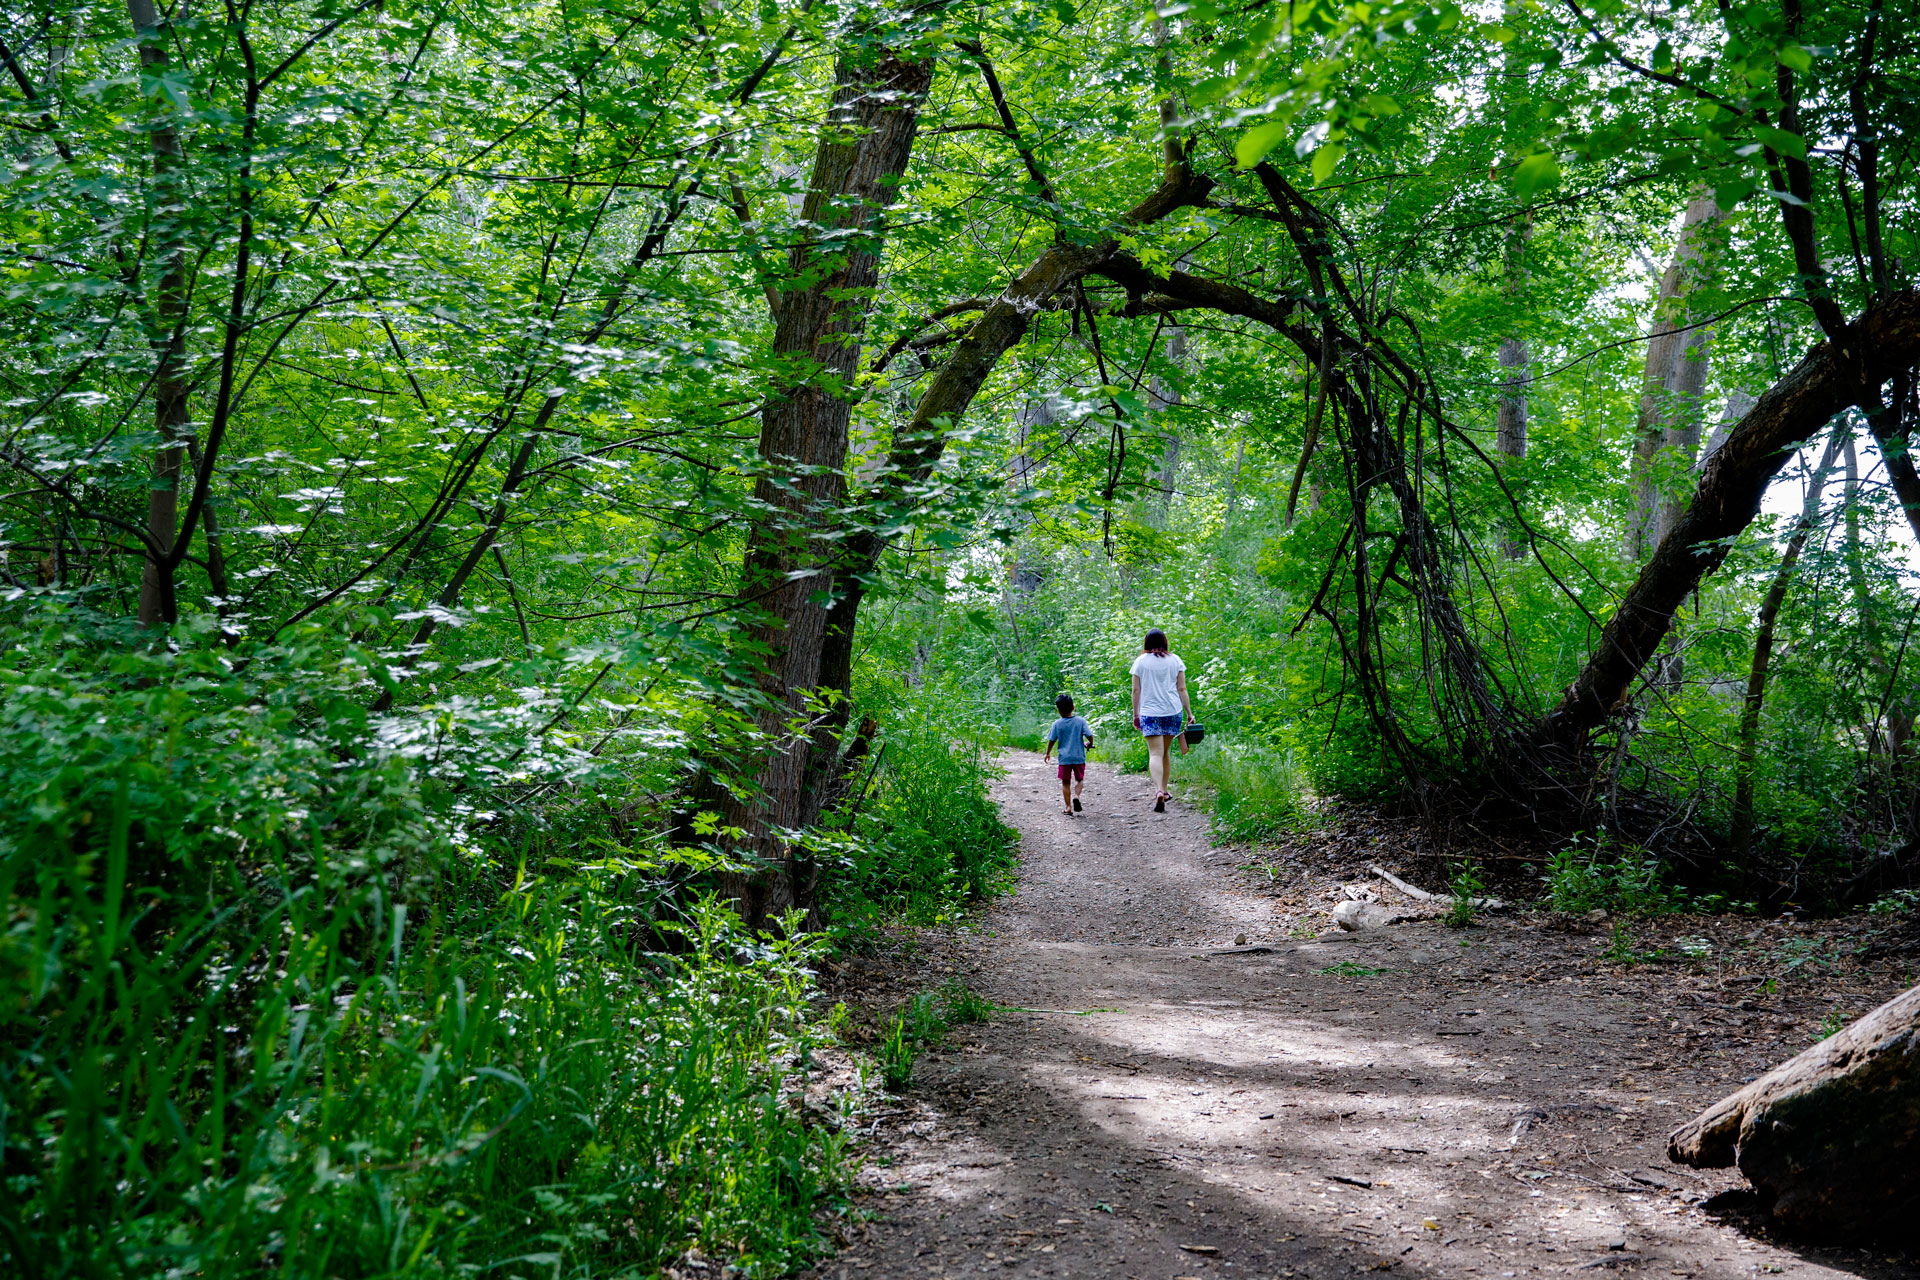 Mom and son walking with fishing gear down at the path lines with green trees overhanging path